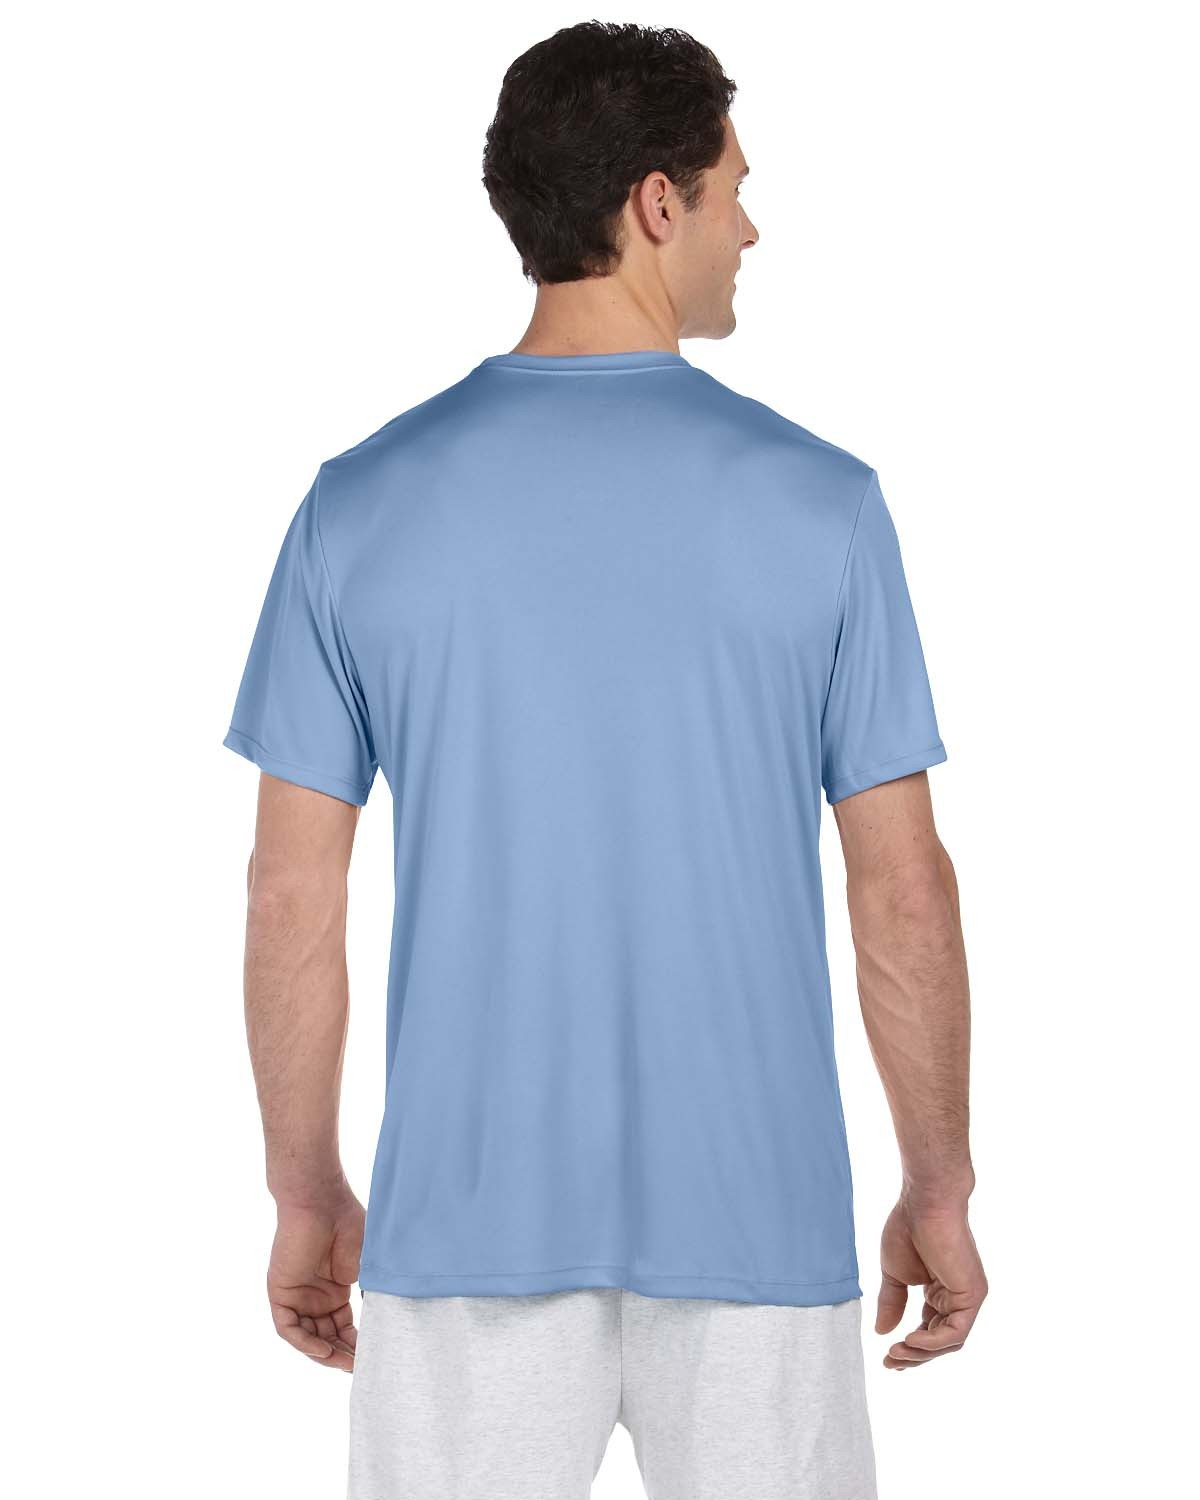 4820 Hanes LIGHT BLUE